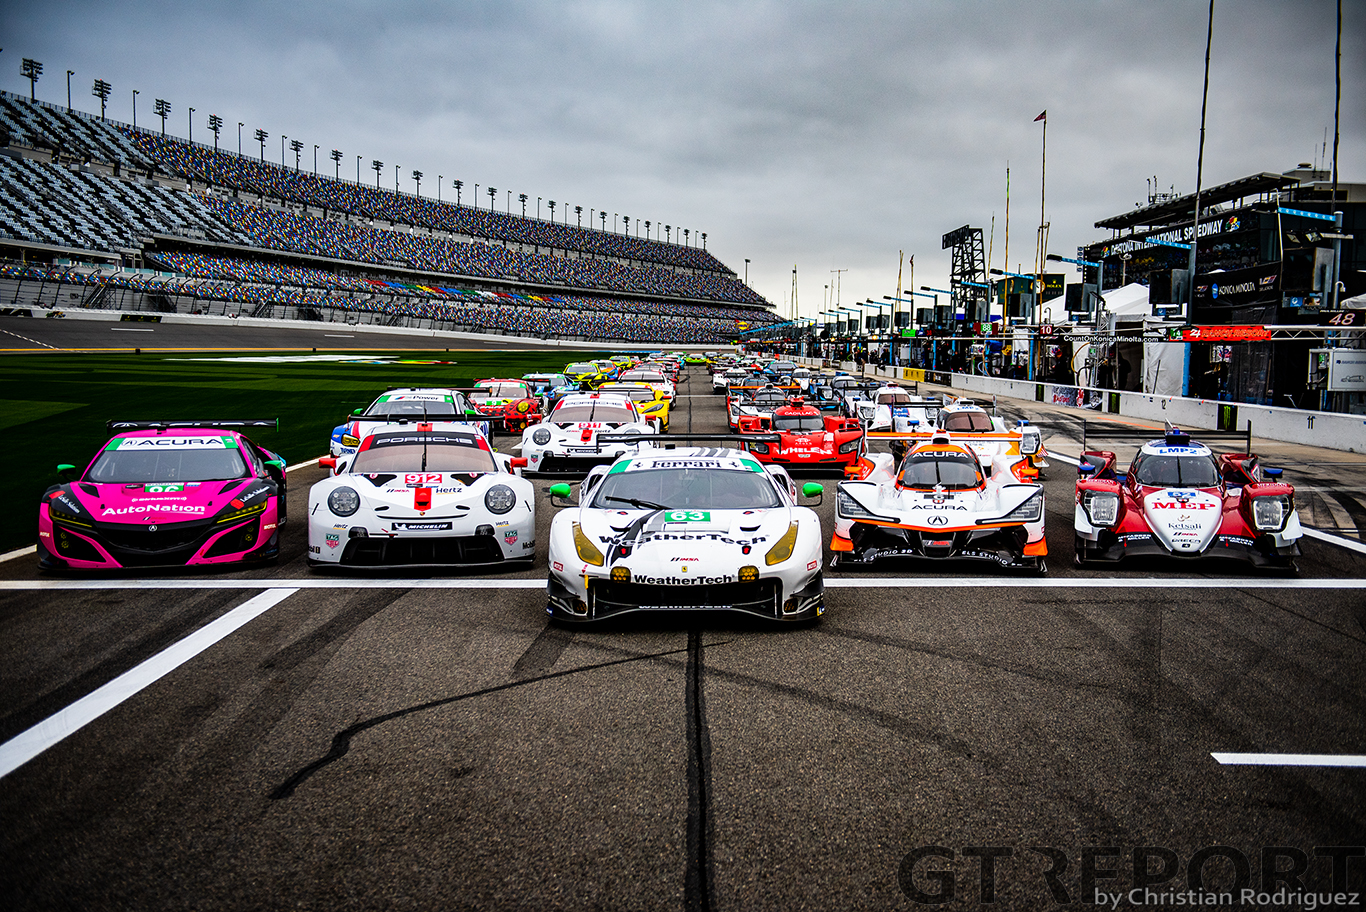 Daytona 24 Hours pre-race notebook